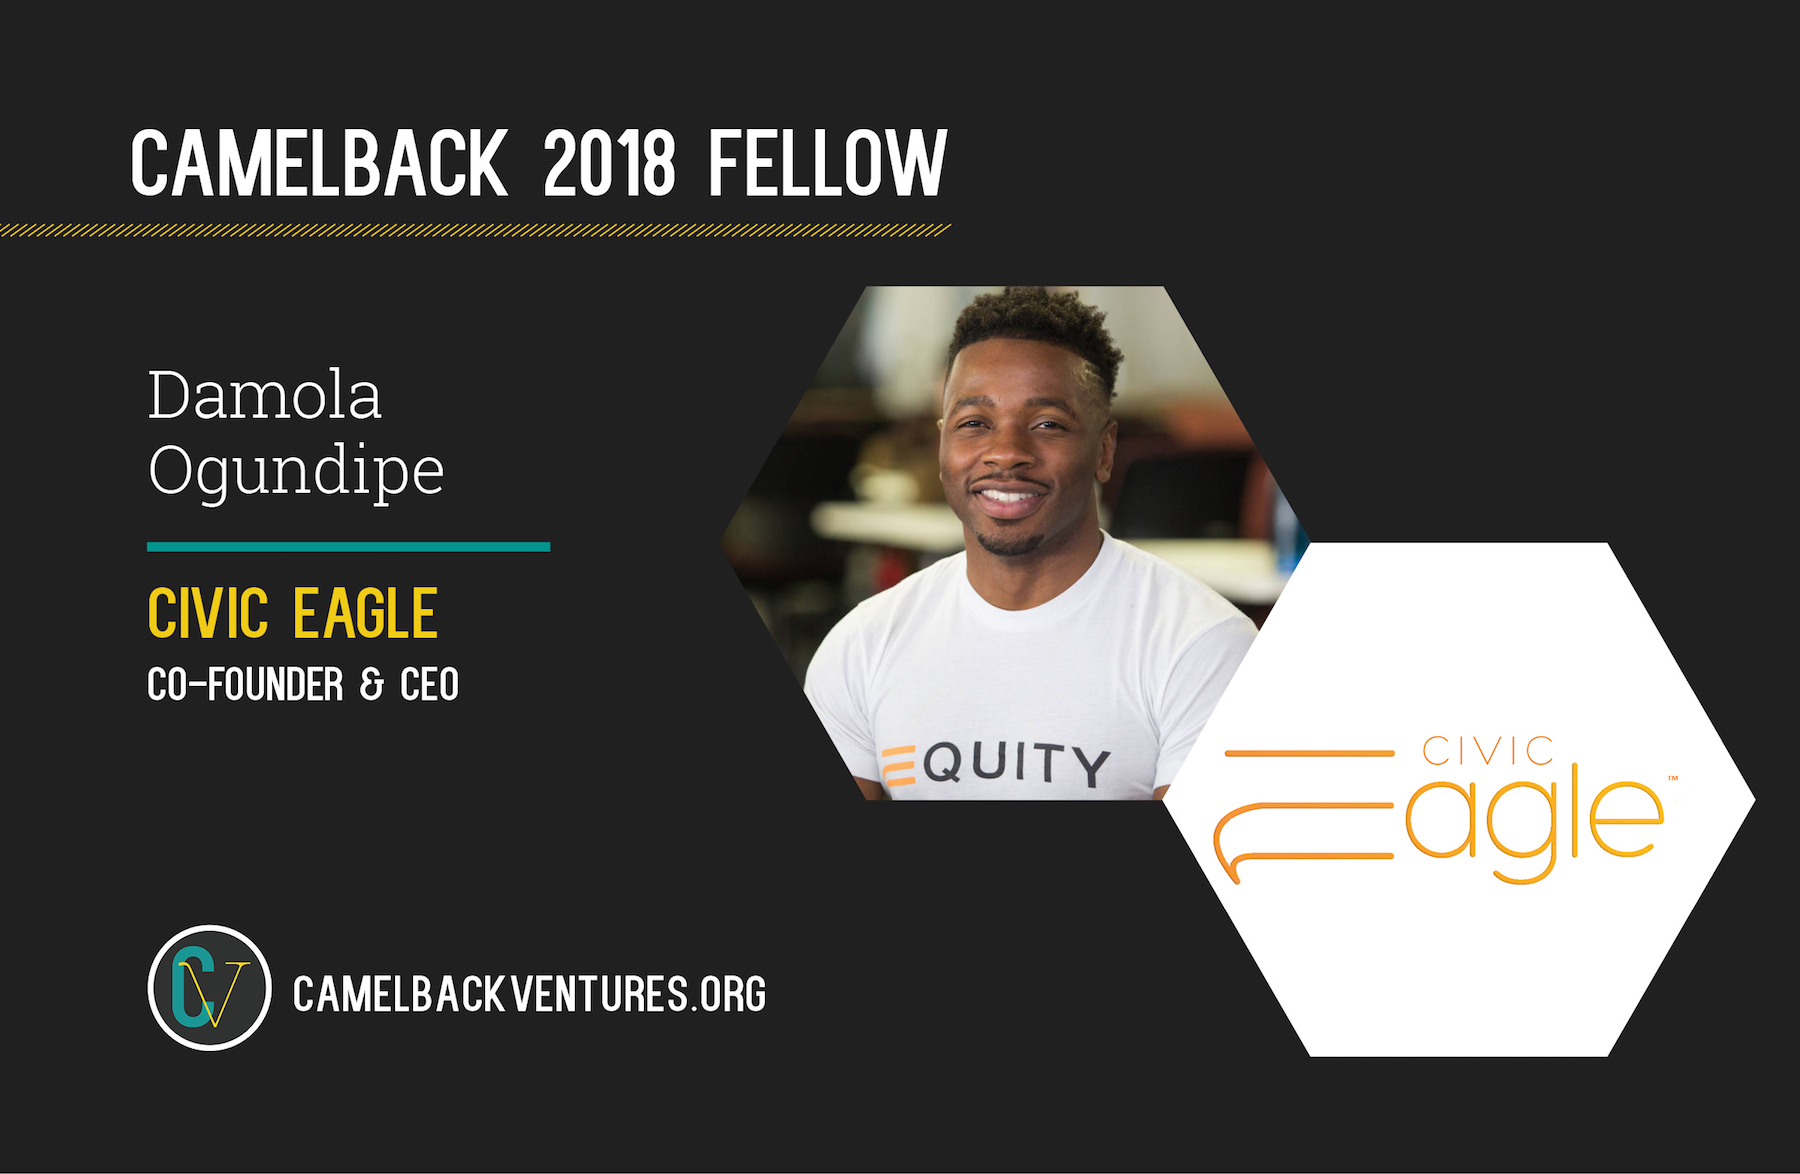 2018camelbackfellows_damola.jpg